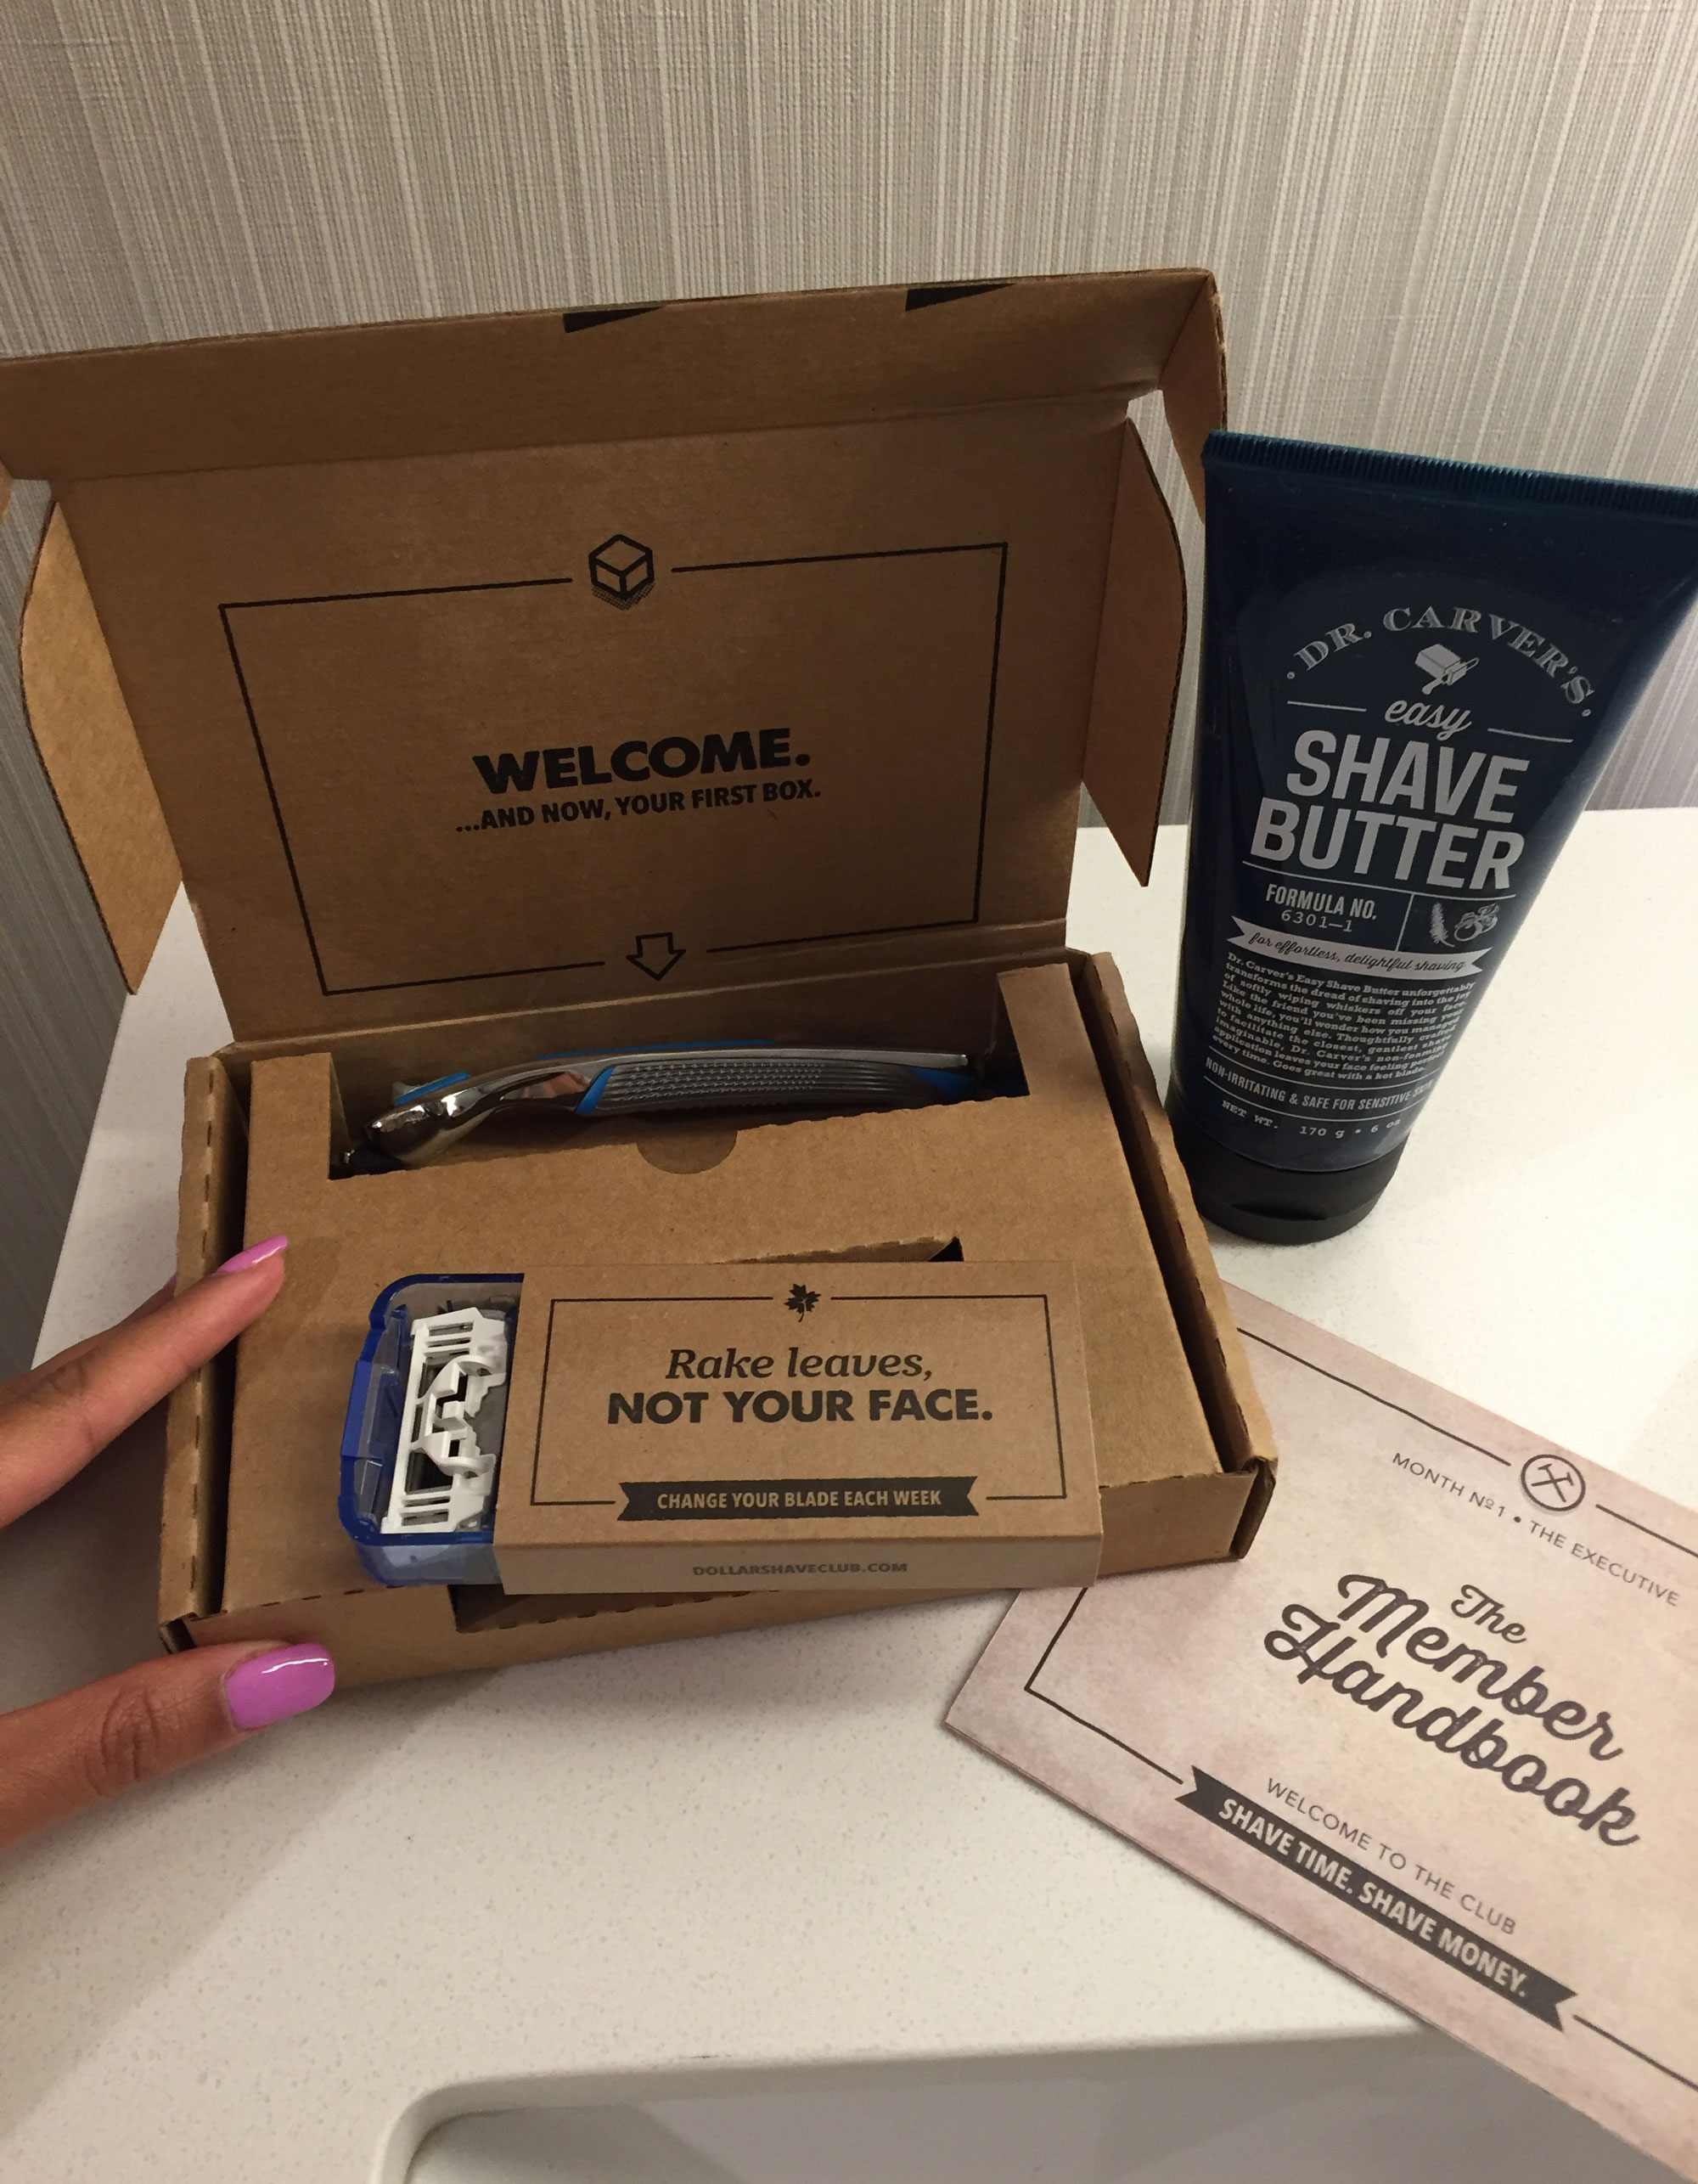 Dollar Shave Club Executive Razor Welcome Box